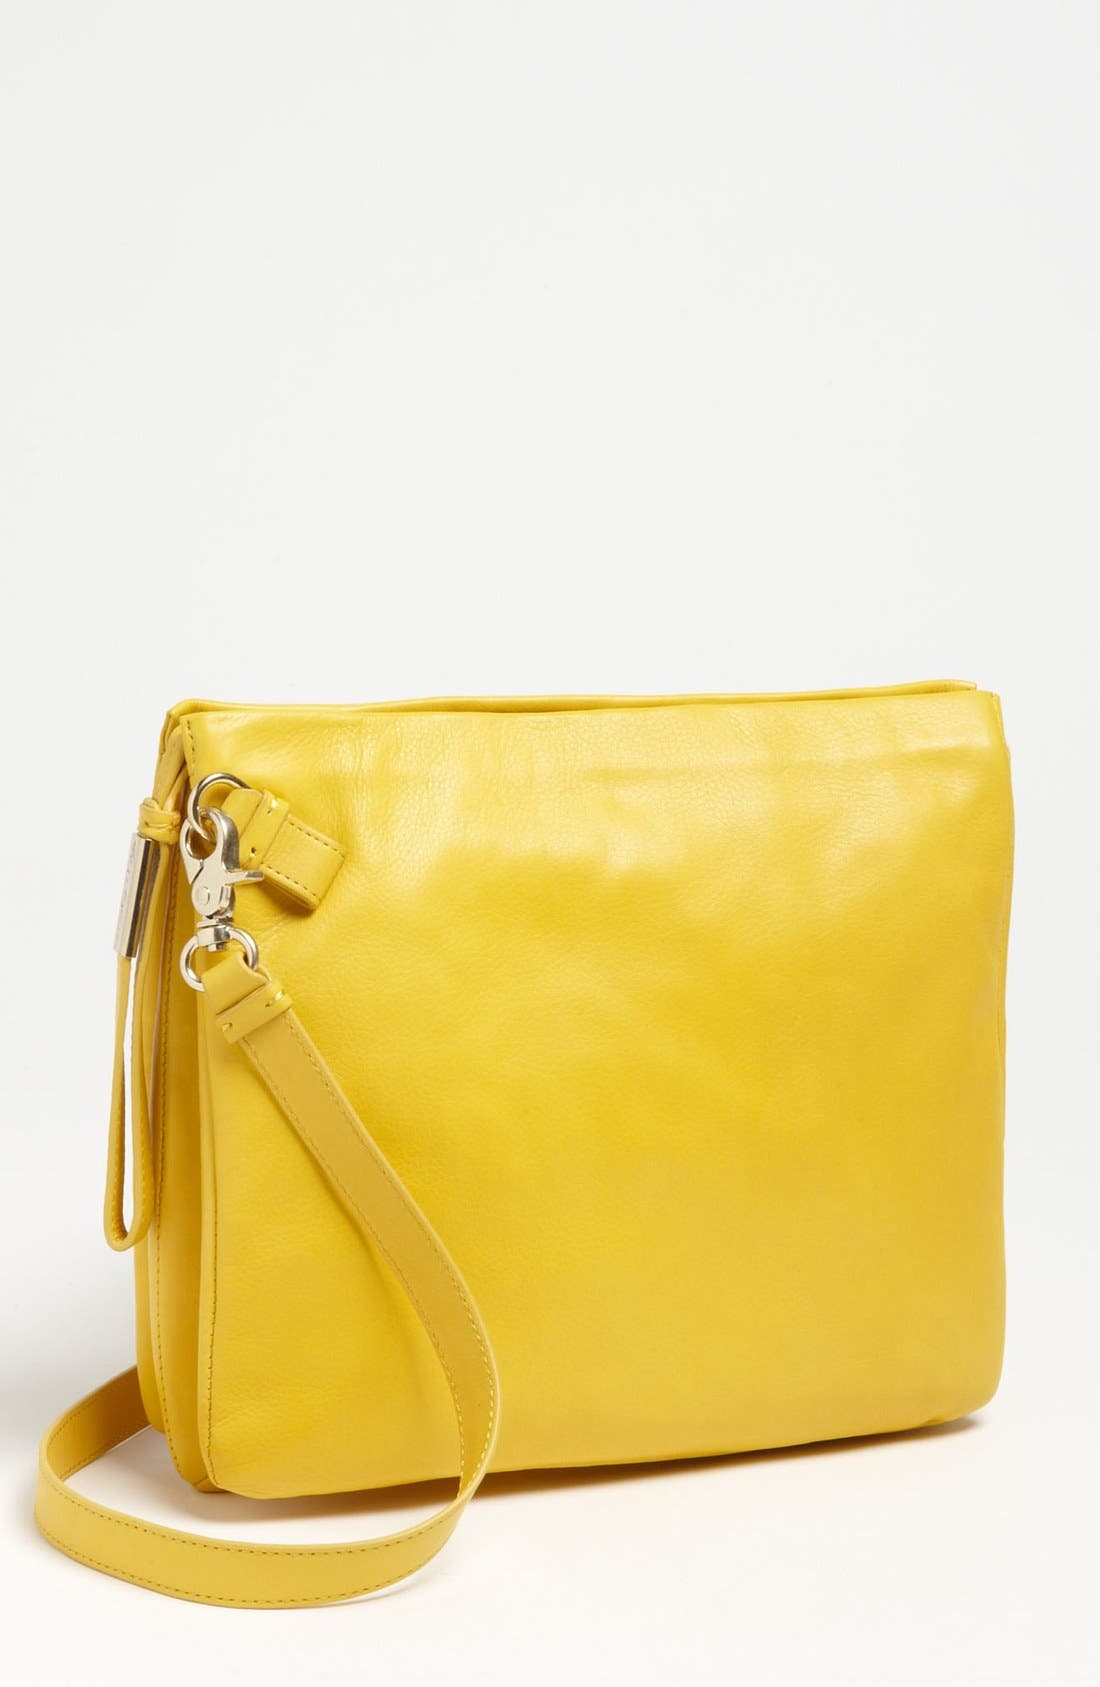 Alternate Image 1 Selected - Foley + Corinna 'iPad Cache' Leather Crossbody Bag